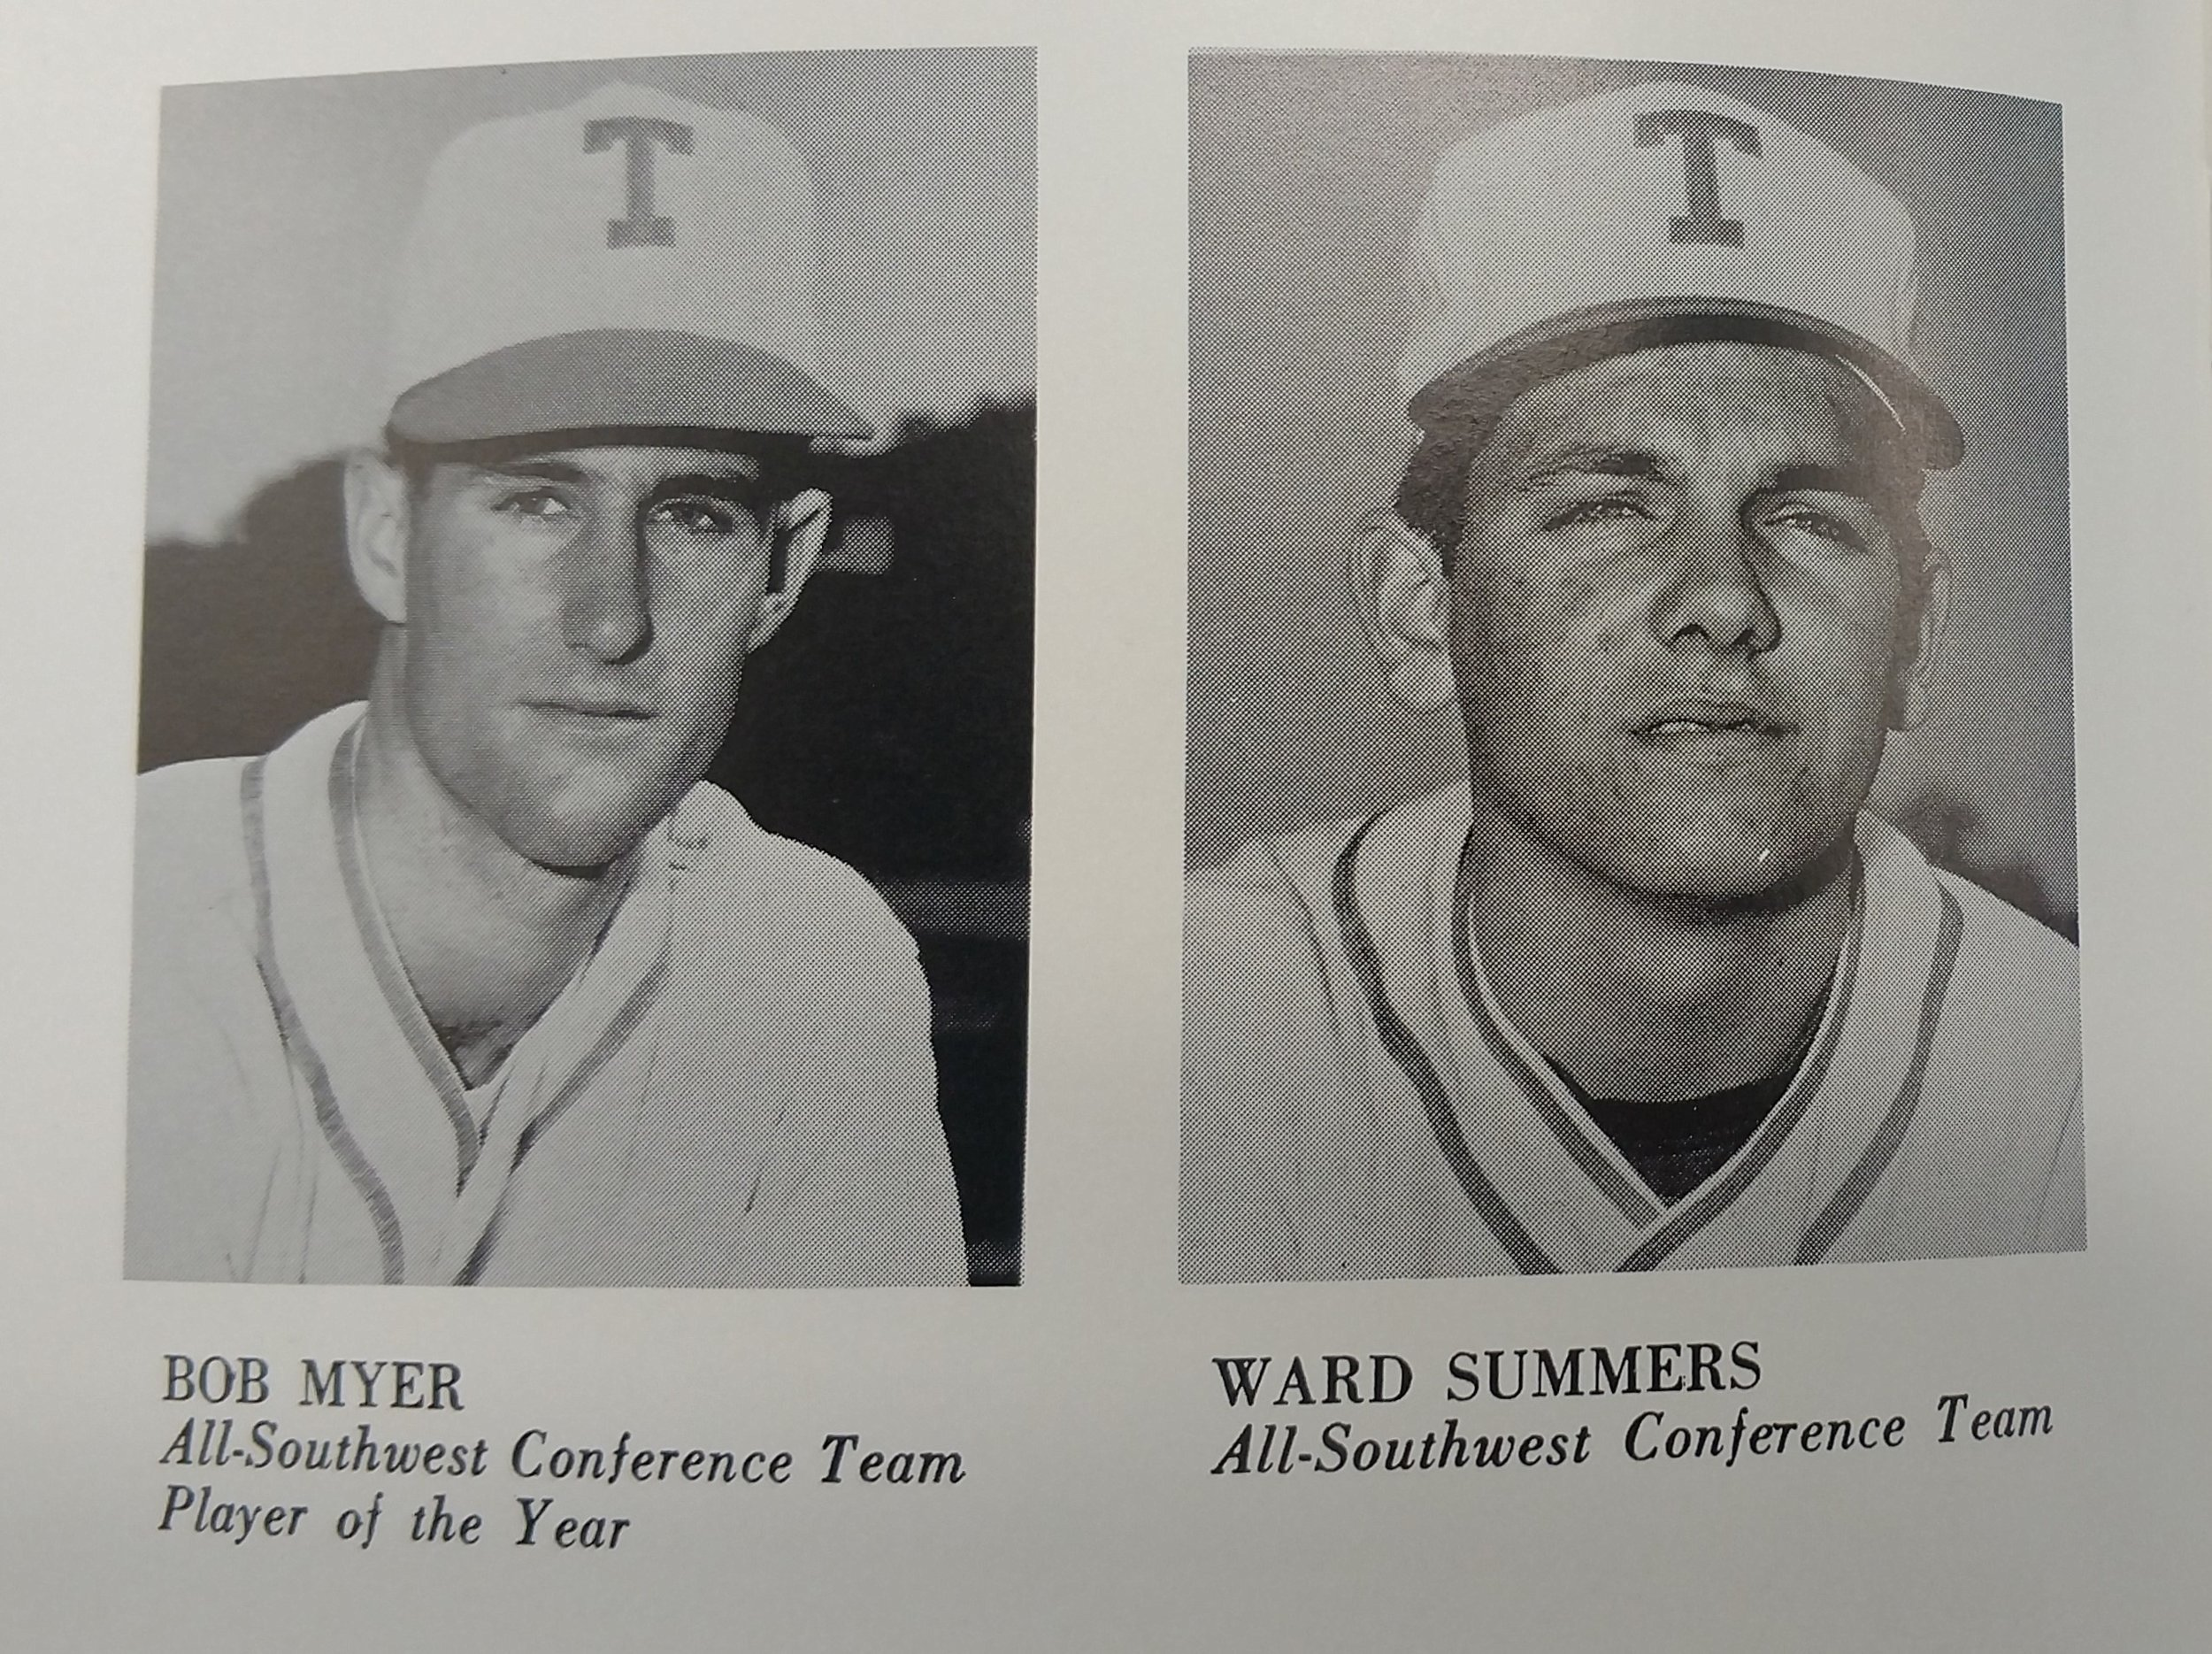 Bob Meyer, Ward Summers